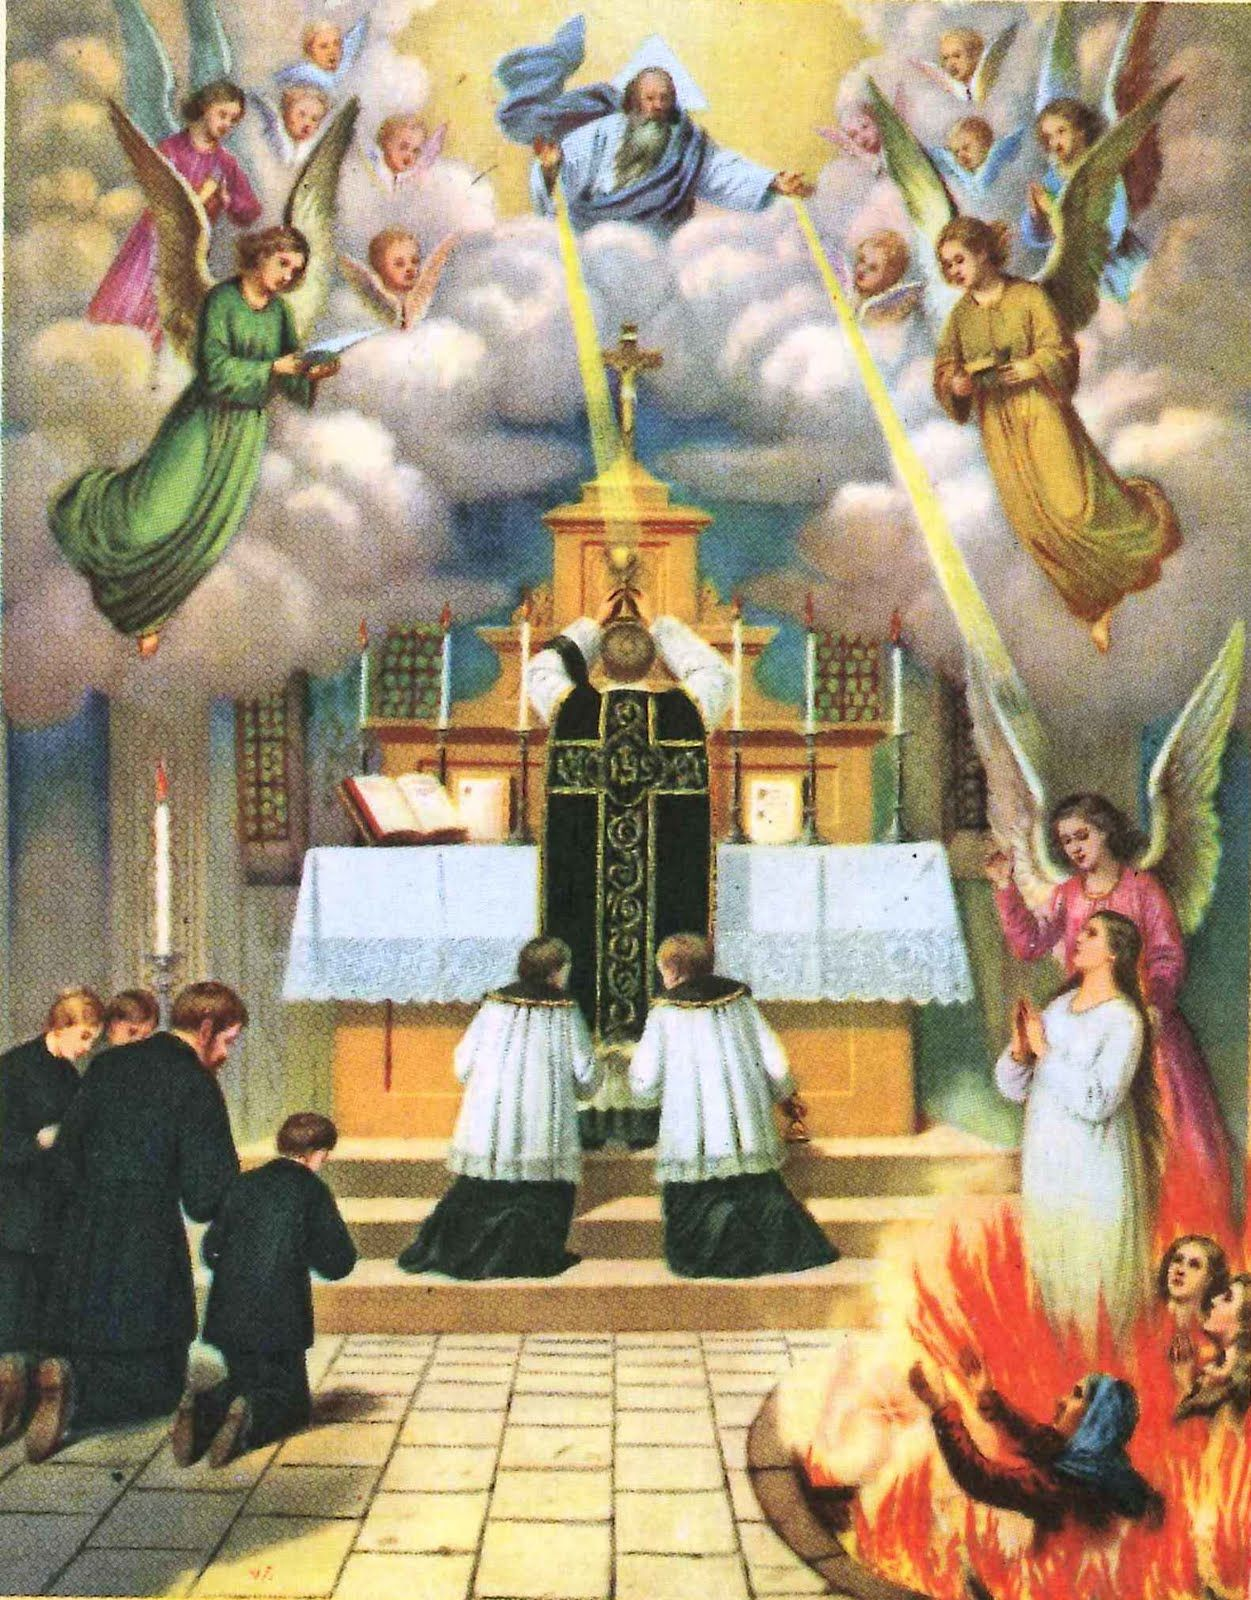 Pray to Our Lady and Offer Masses for the Holy Souls in Purgatory